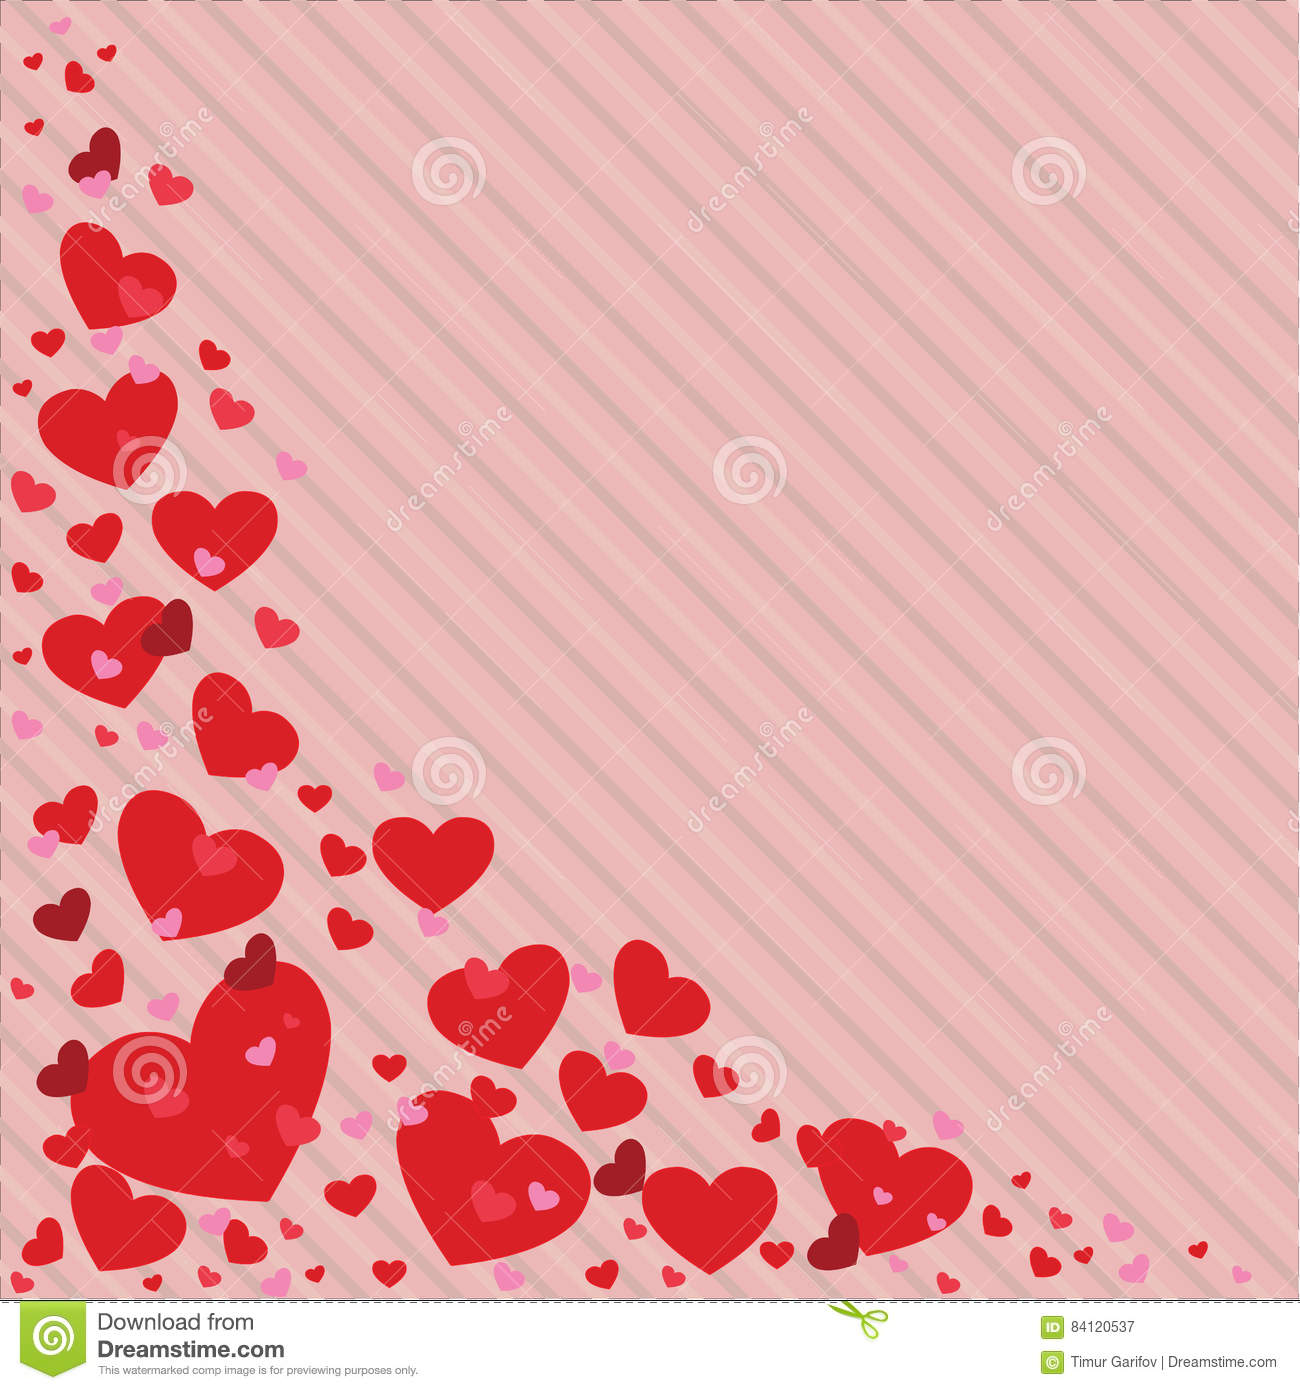 Valentines Day Heart Vector Illustration In Different Colors